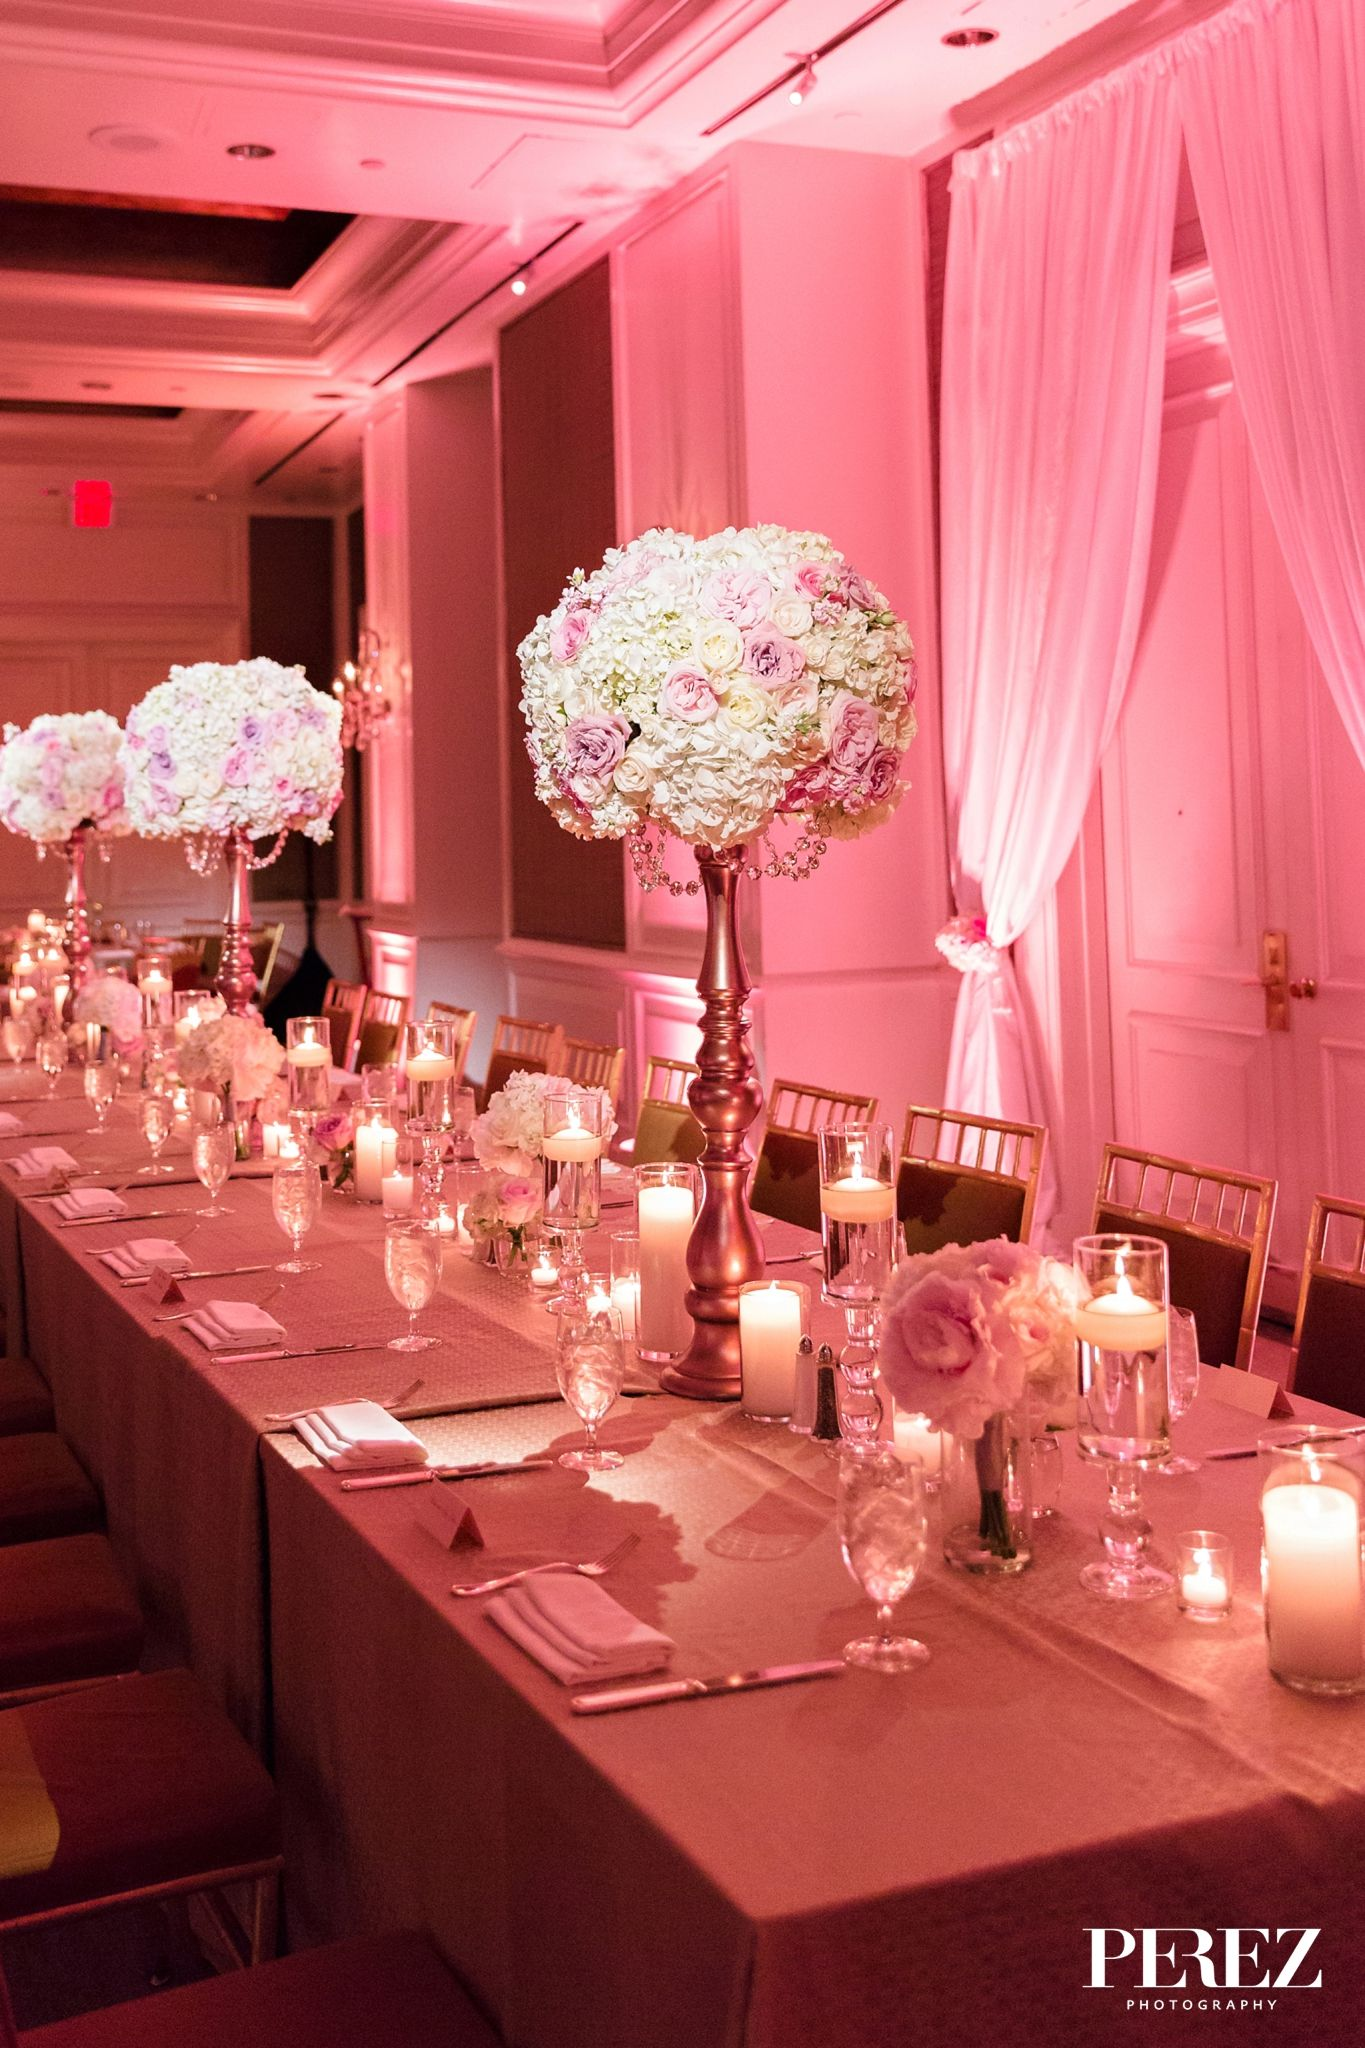 Pin On Crescent Court: Wedding Events, Table Decorations